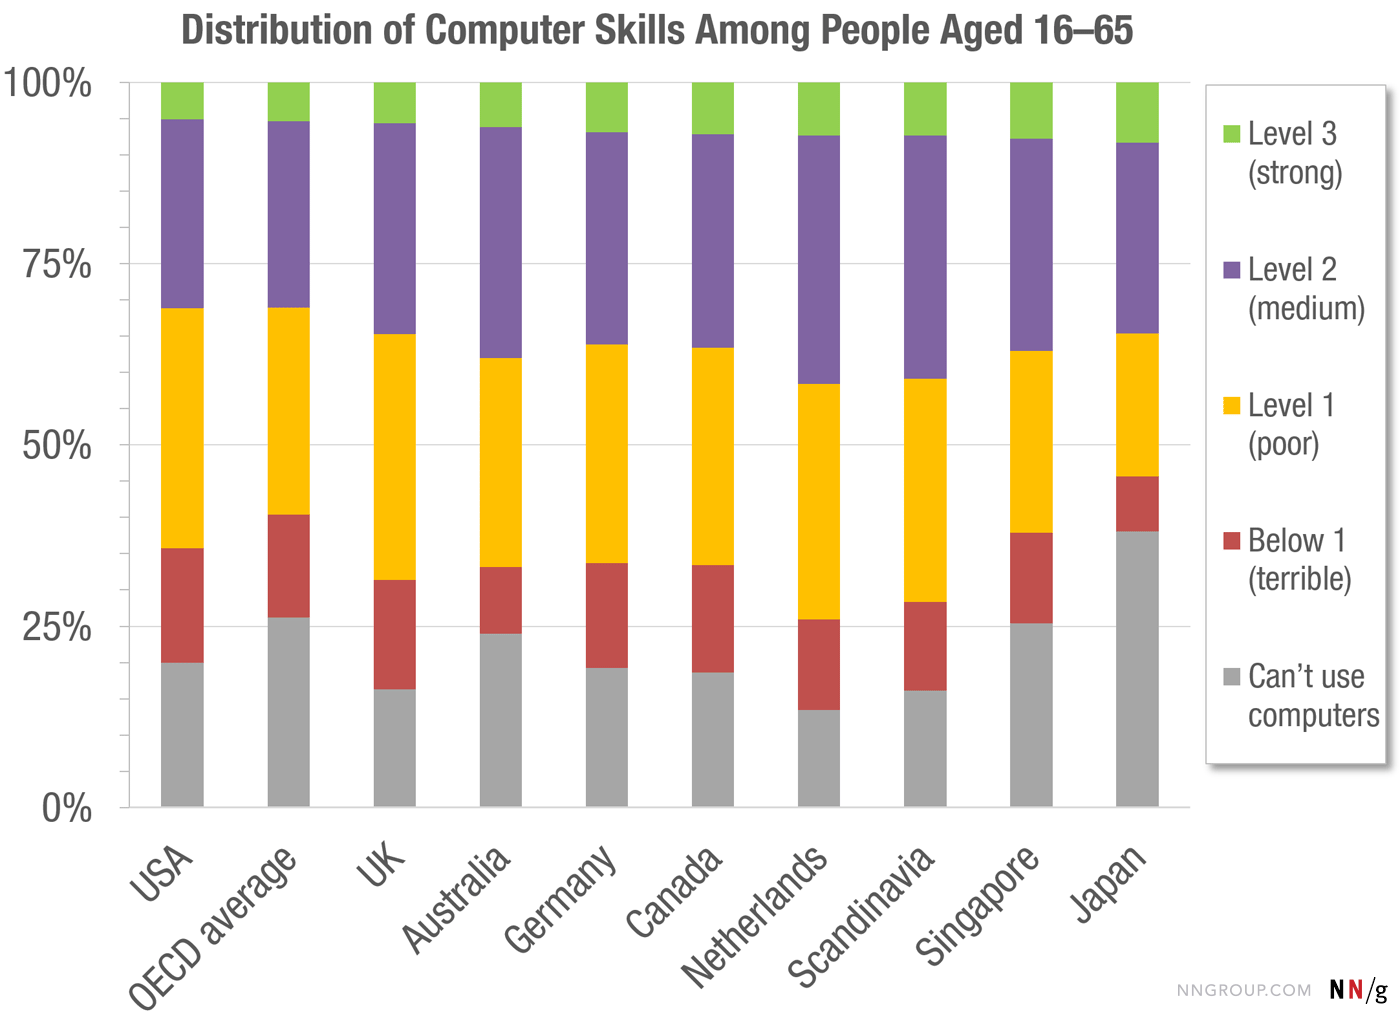 Distribution of computer skills among people aged 16-65